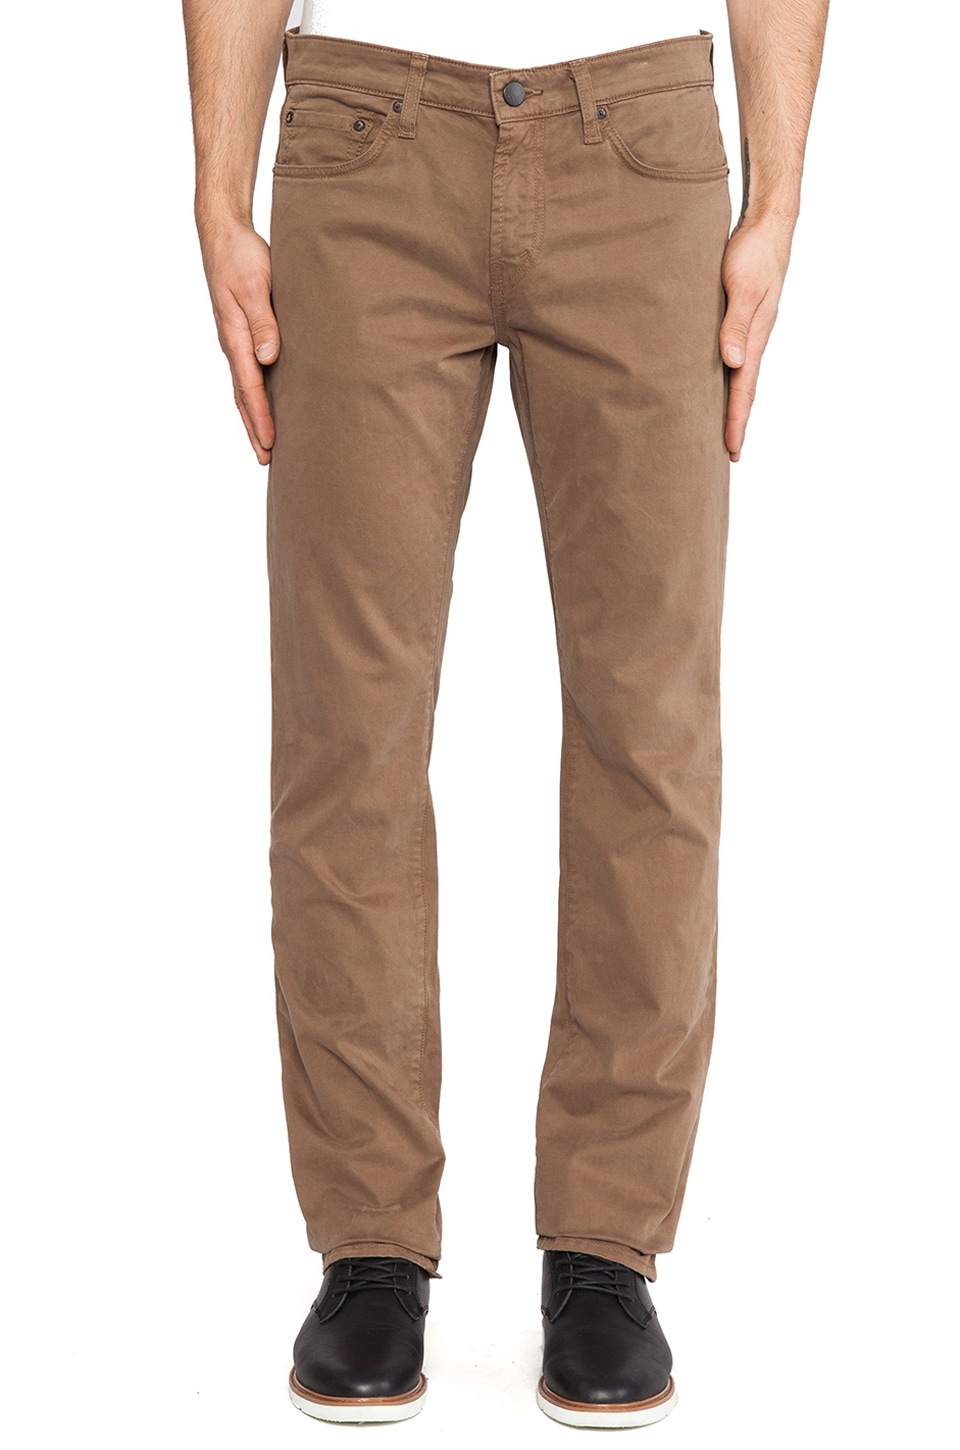 J Brand Kane Twill in Russet